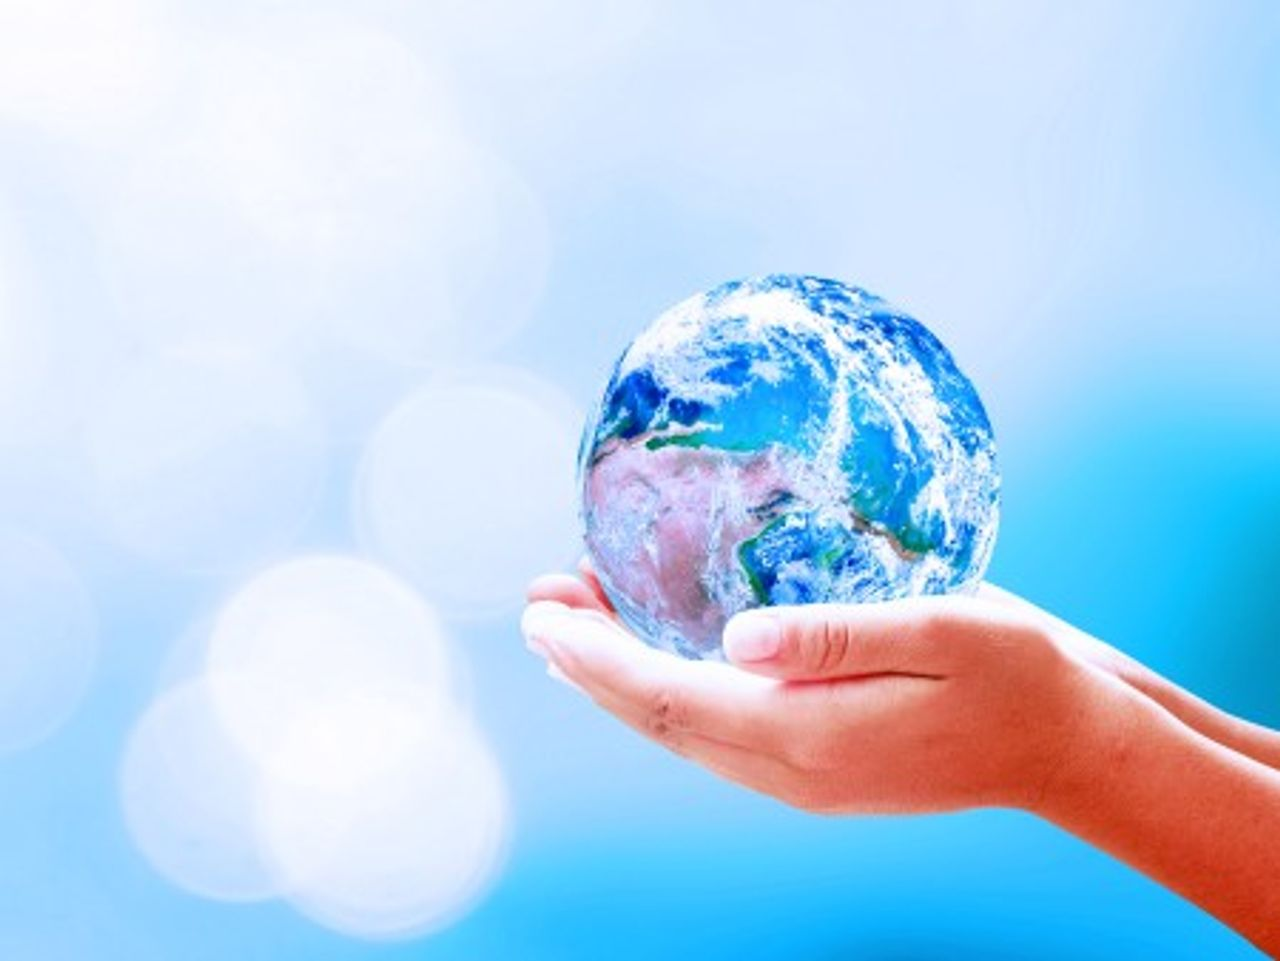 One person holding a world glass bal with two handsl in front of a blue background